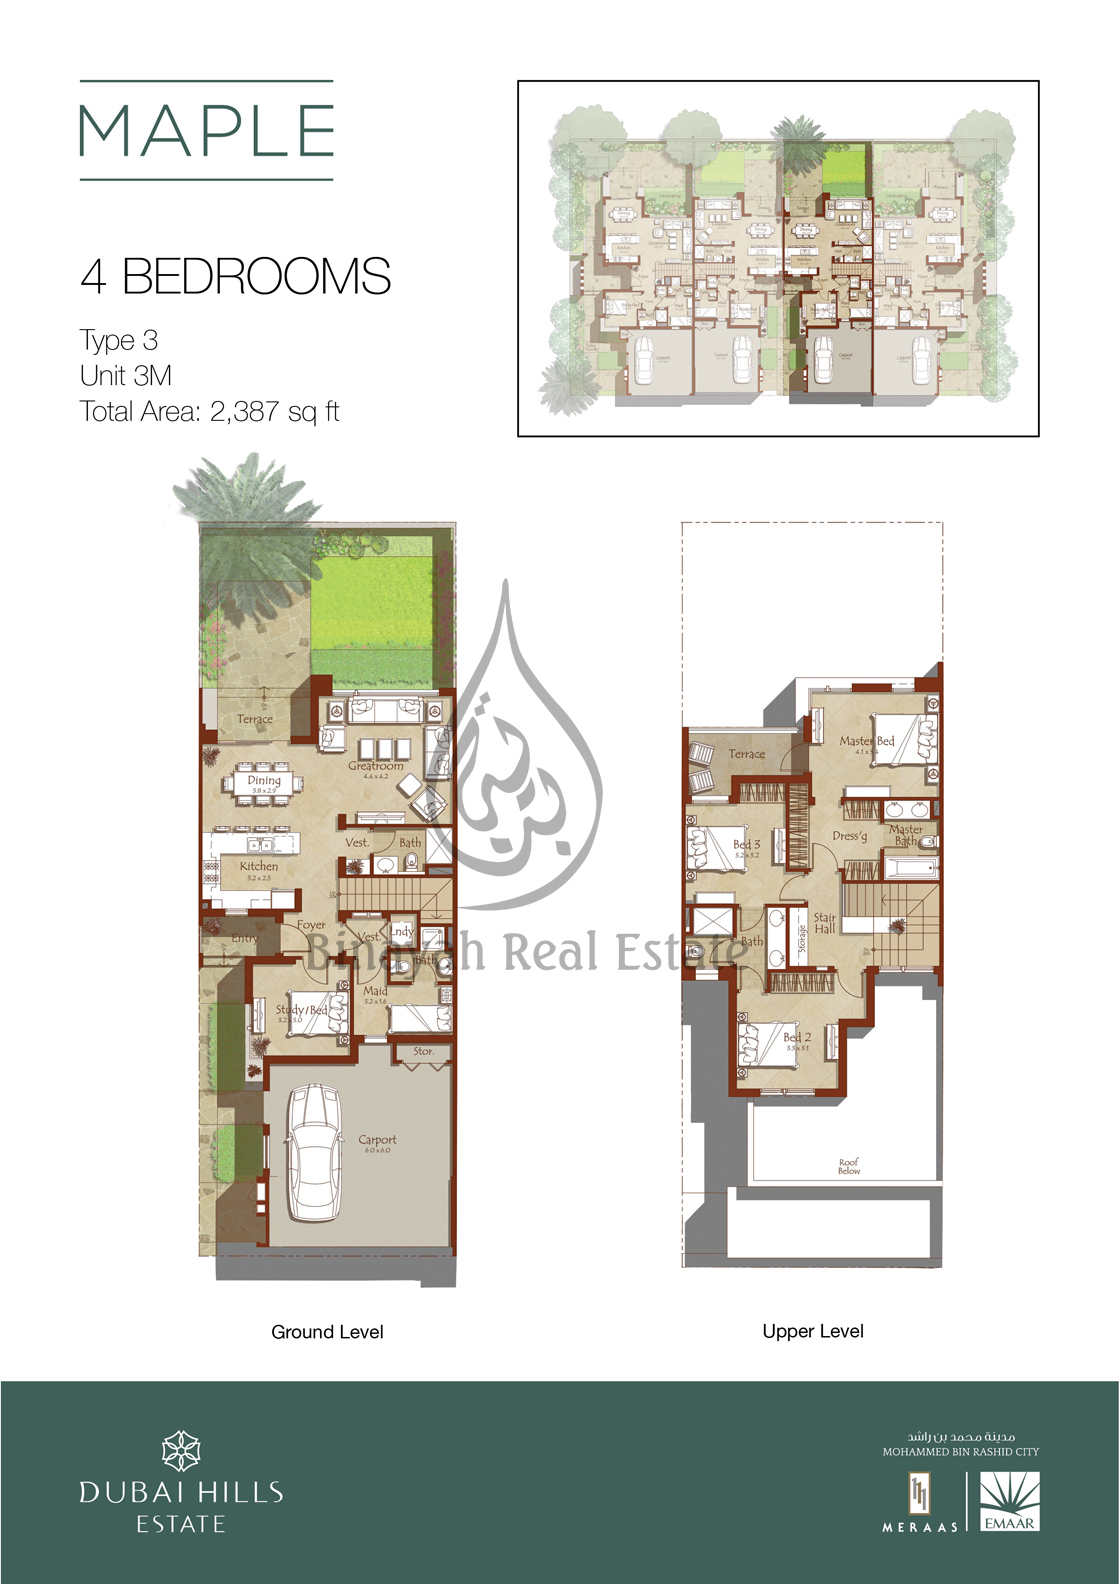 Maple by emaar properties at dubai hills estate for Townhouse layout 3 bedrooms